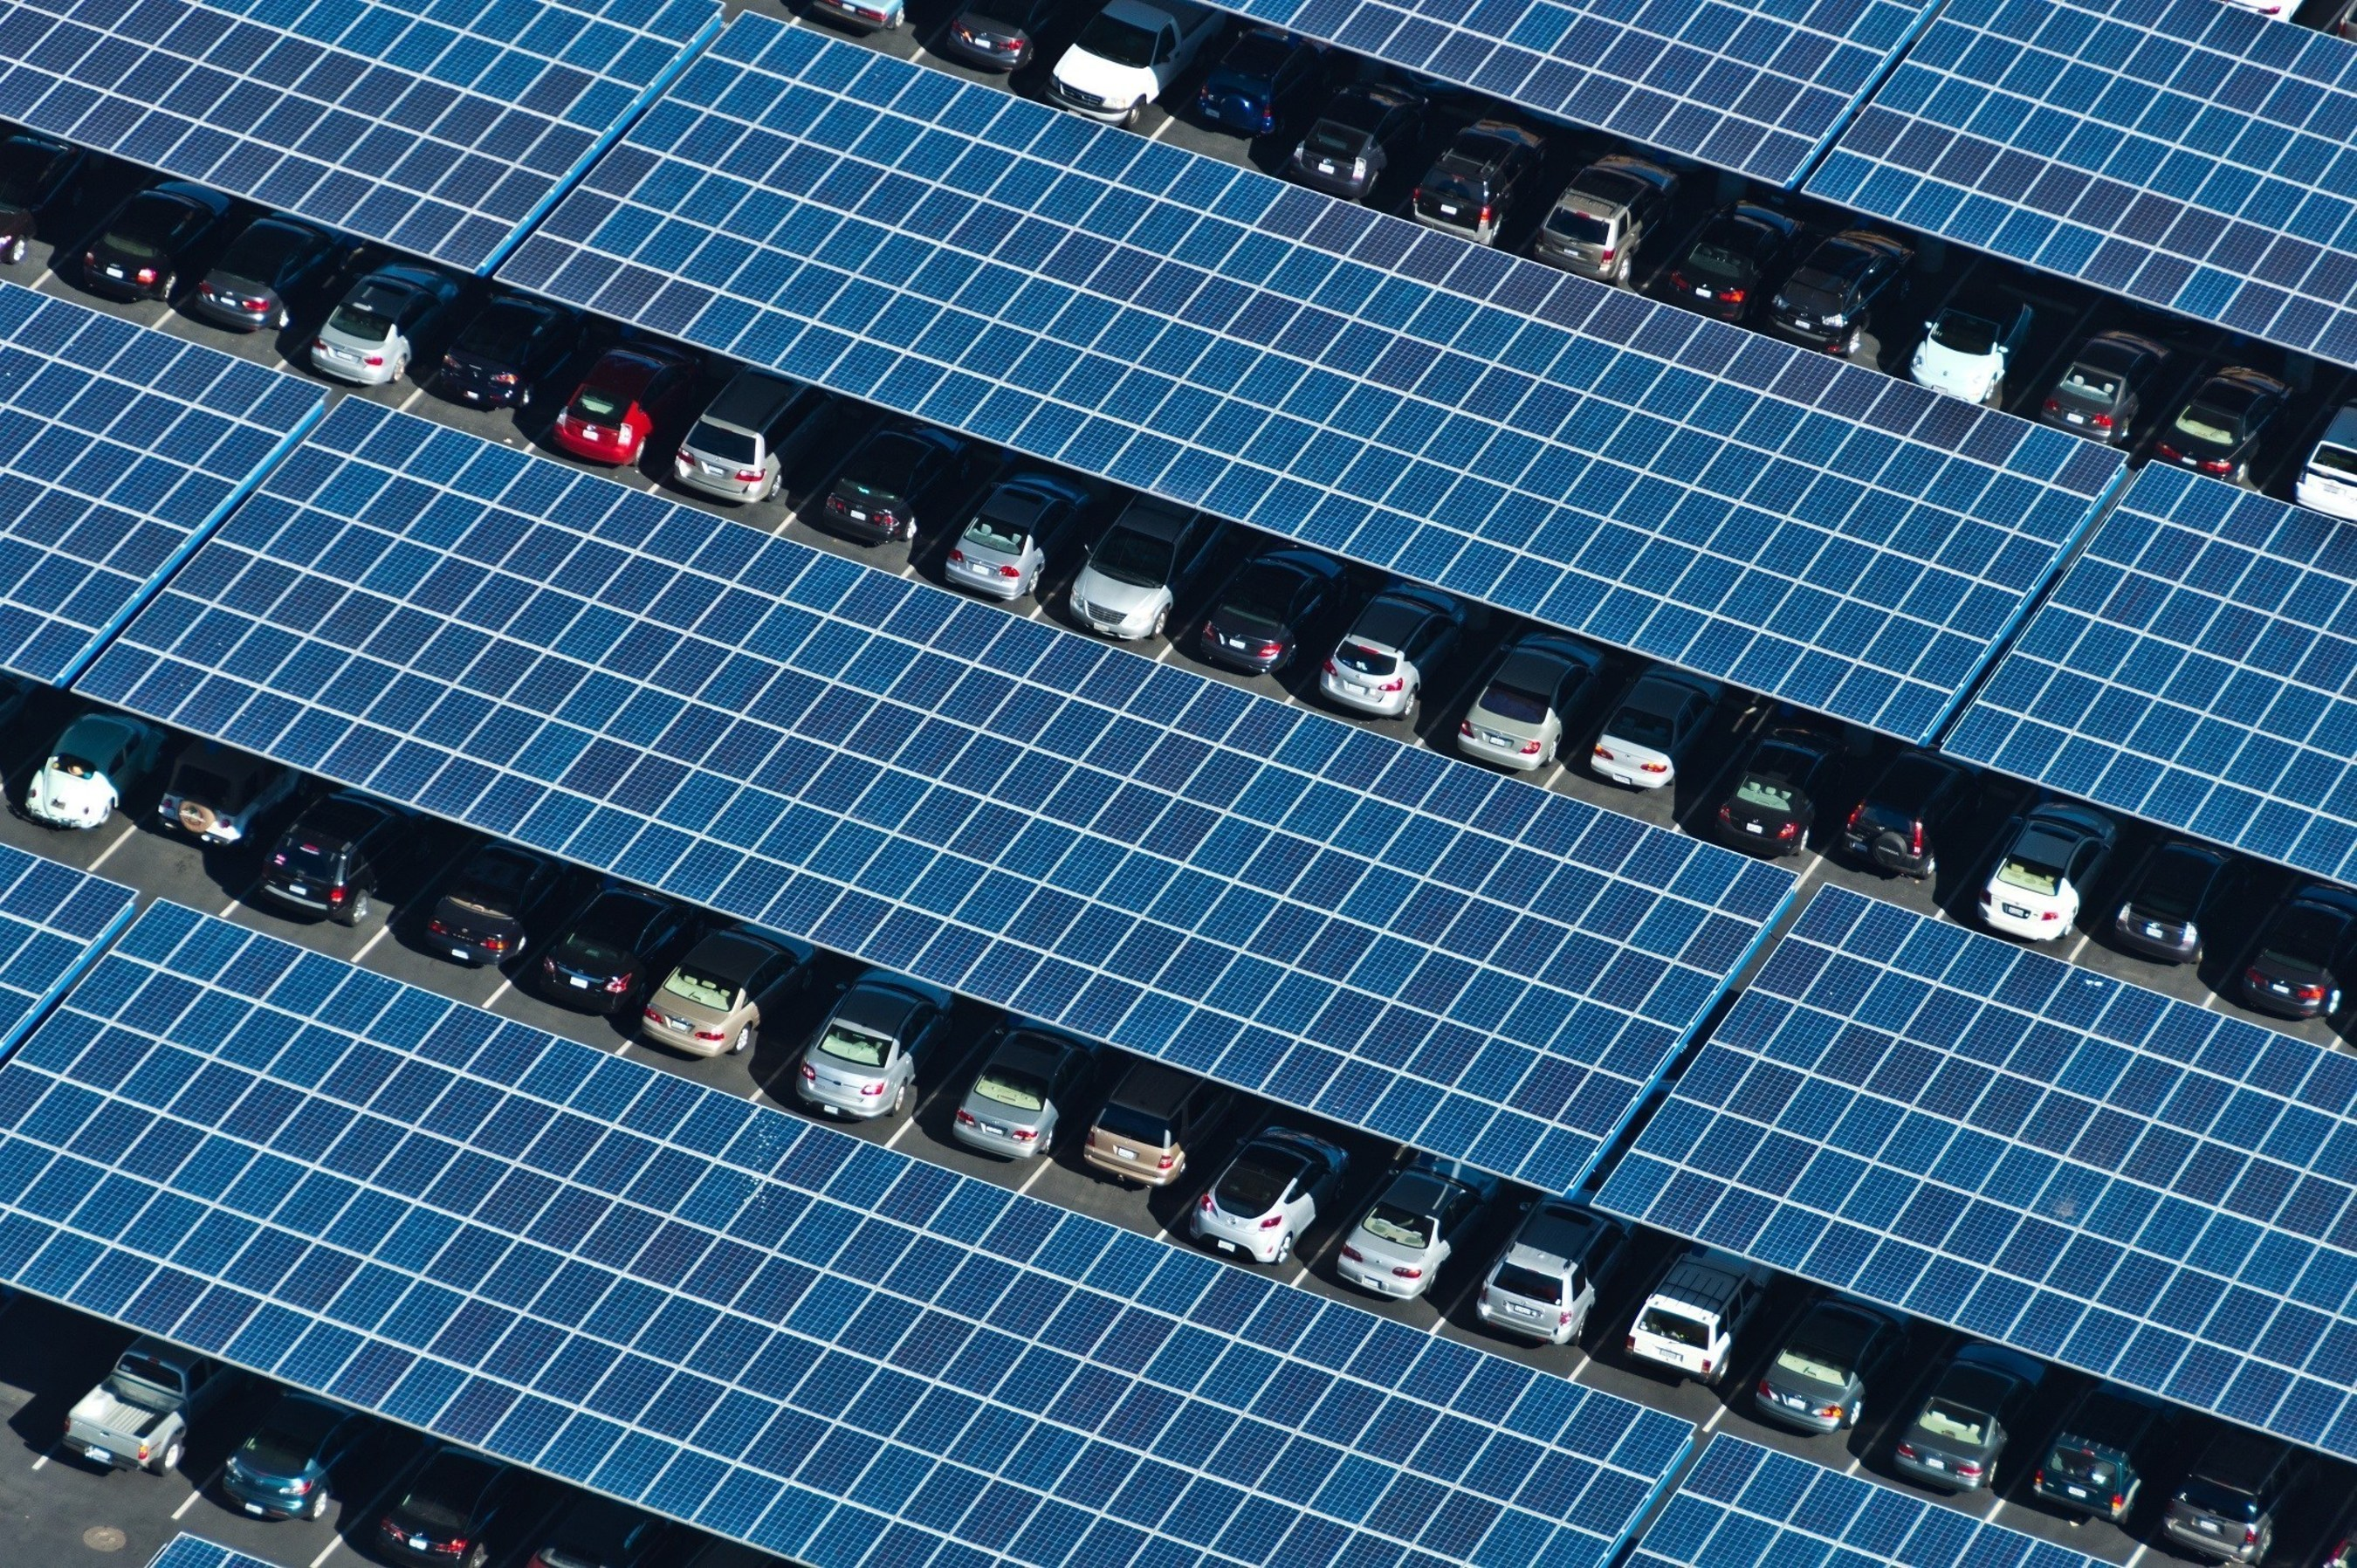 SunEdison solar parking canopies provide both shade for parked cars and cost effective, clean solar energy.